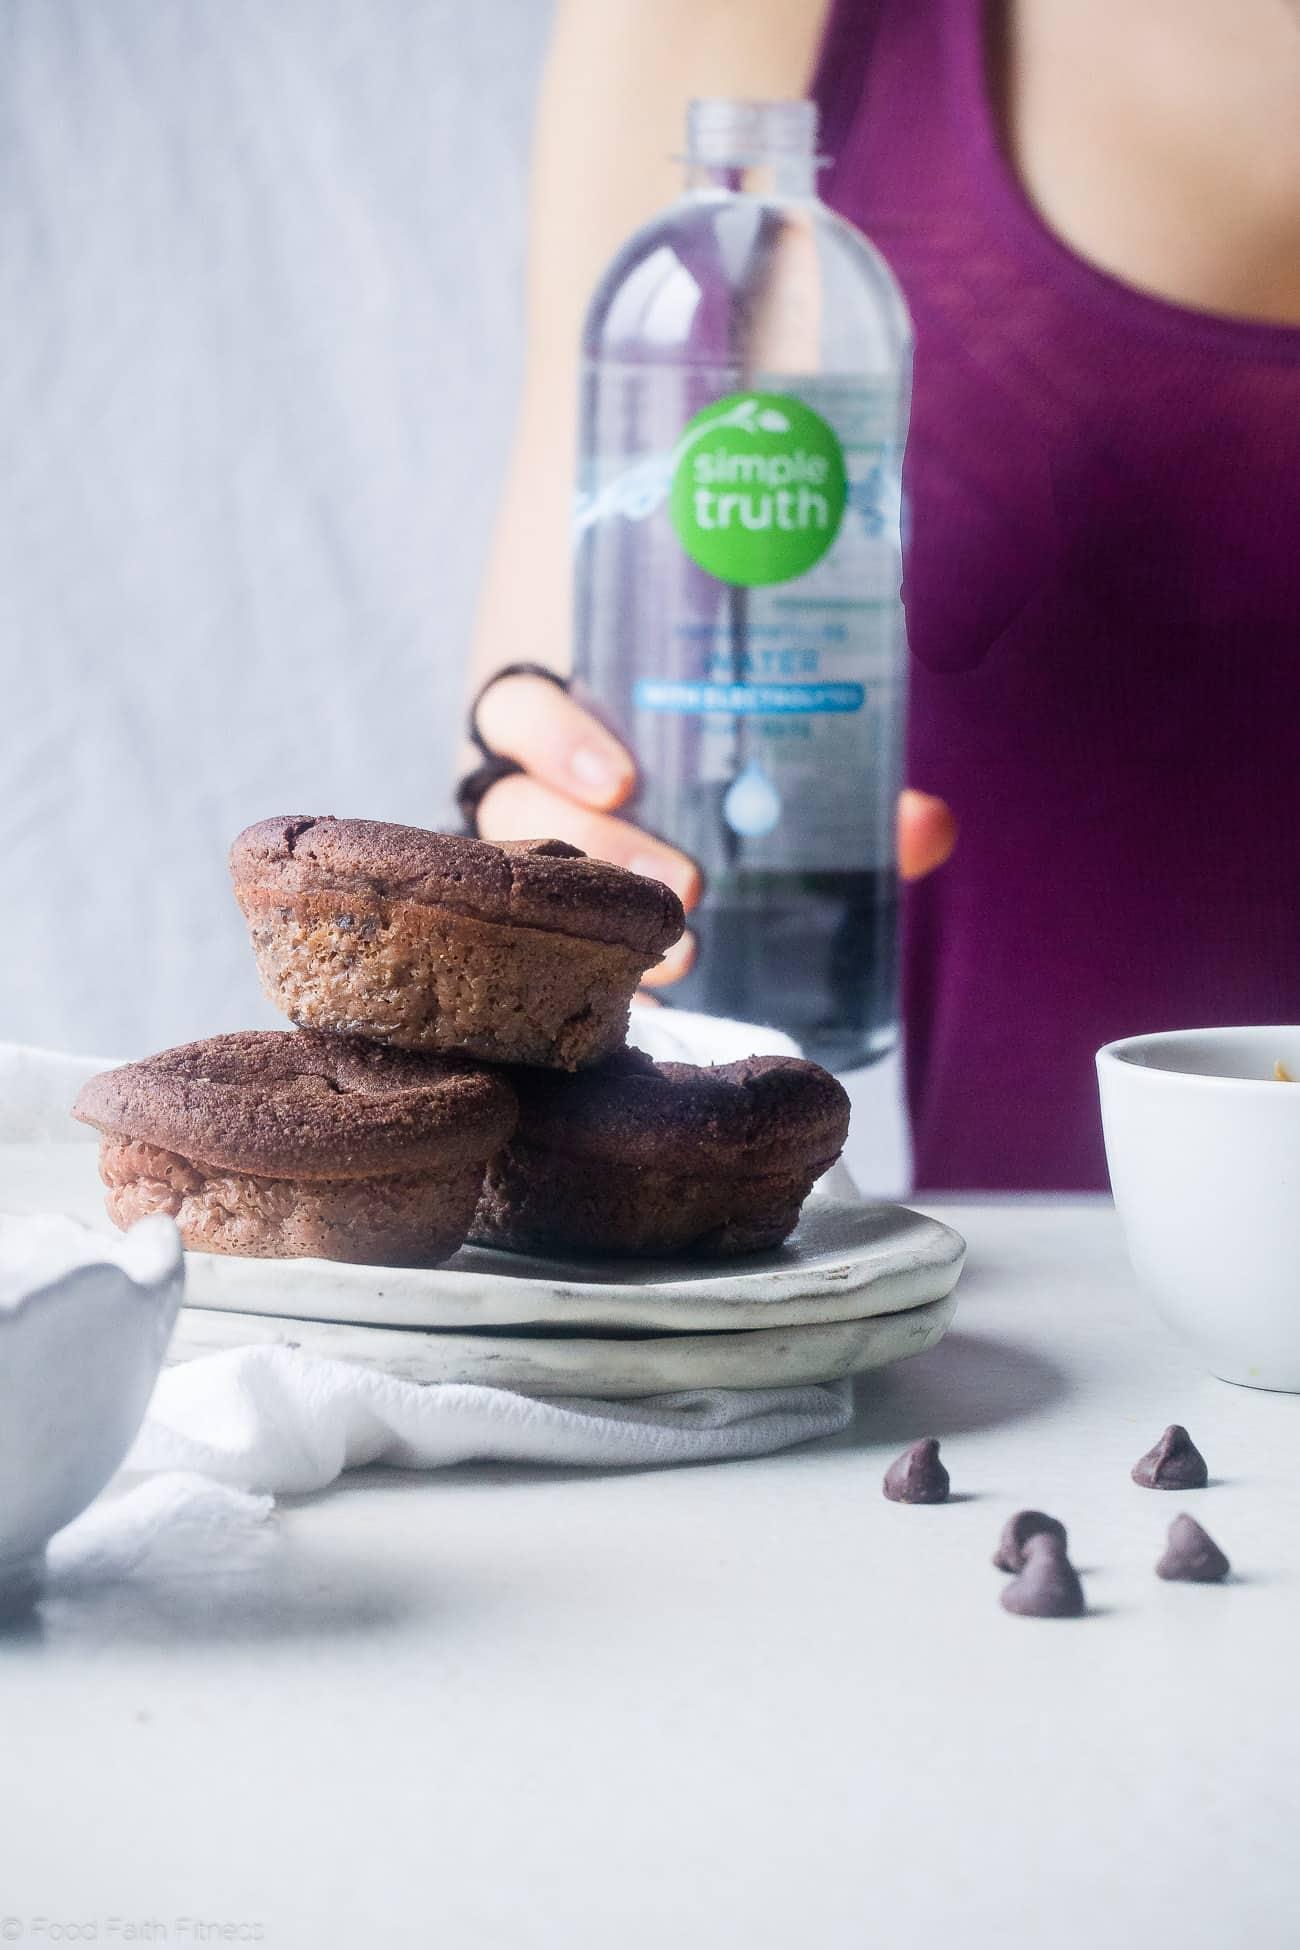 Cookie Dough Chocolate Egg Muffins - These 150 calorie, cookie dough stuffed muffins use a secret ingredient to makes them gluten free and protein packed! An easy, healthy snack or portable breakfast for busy mornings! | Foodfaithfitness.com | @FoodFaithFit